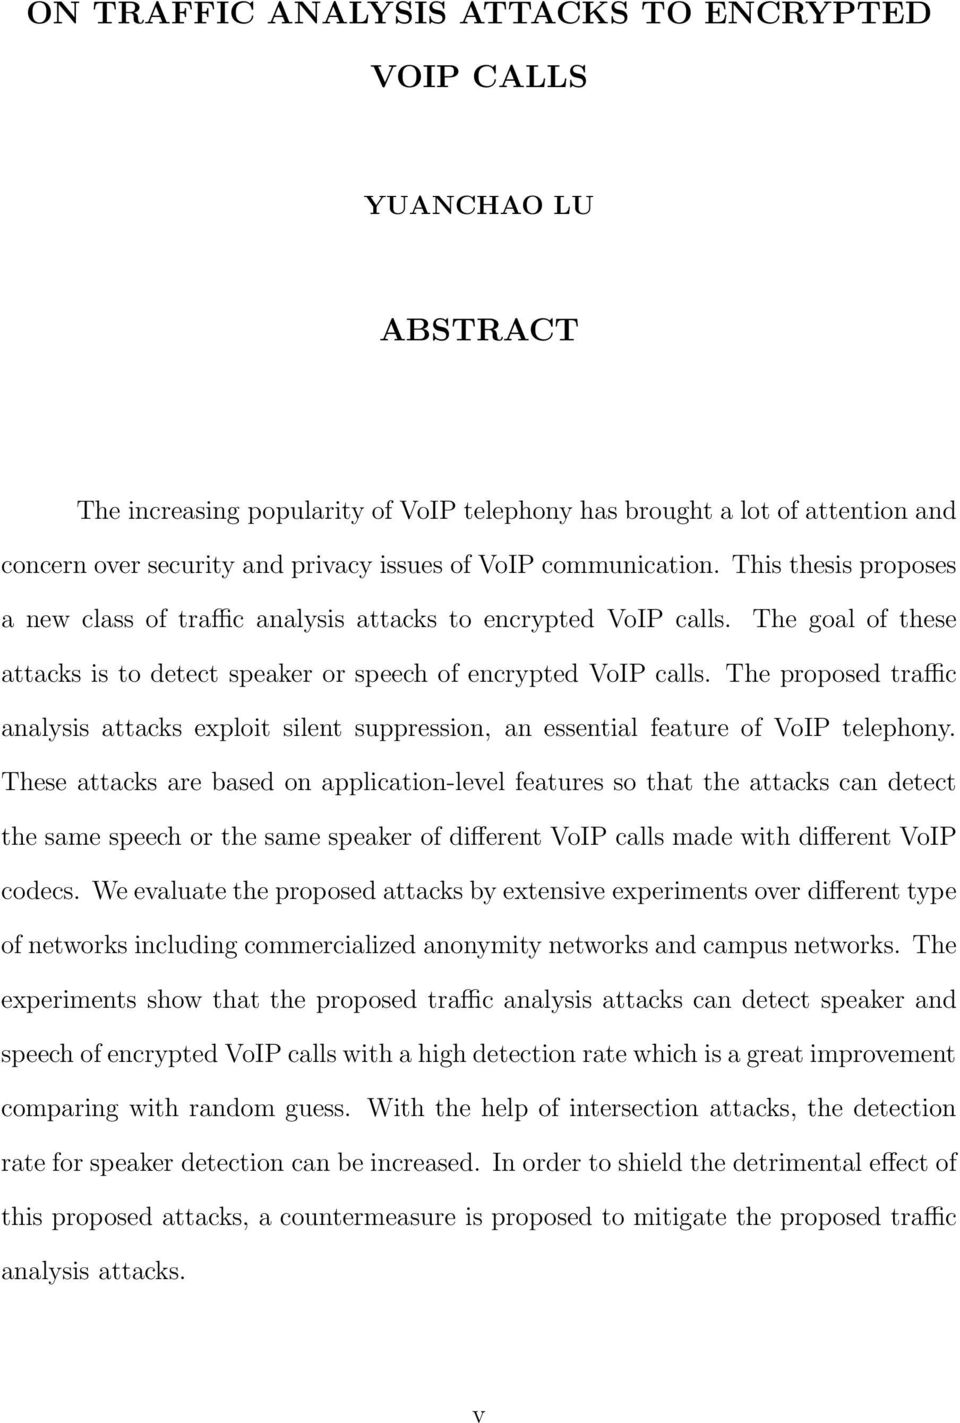 The proposed traffic analysis attacks exploit silent suppression, an essential feature of VoIP telephony.